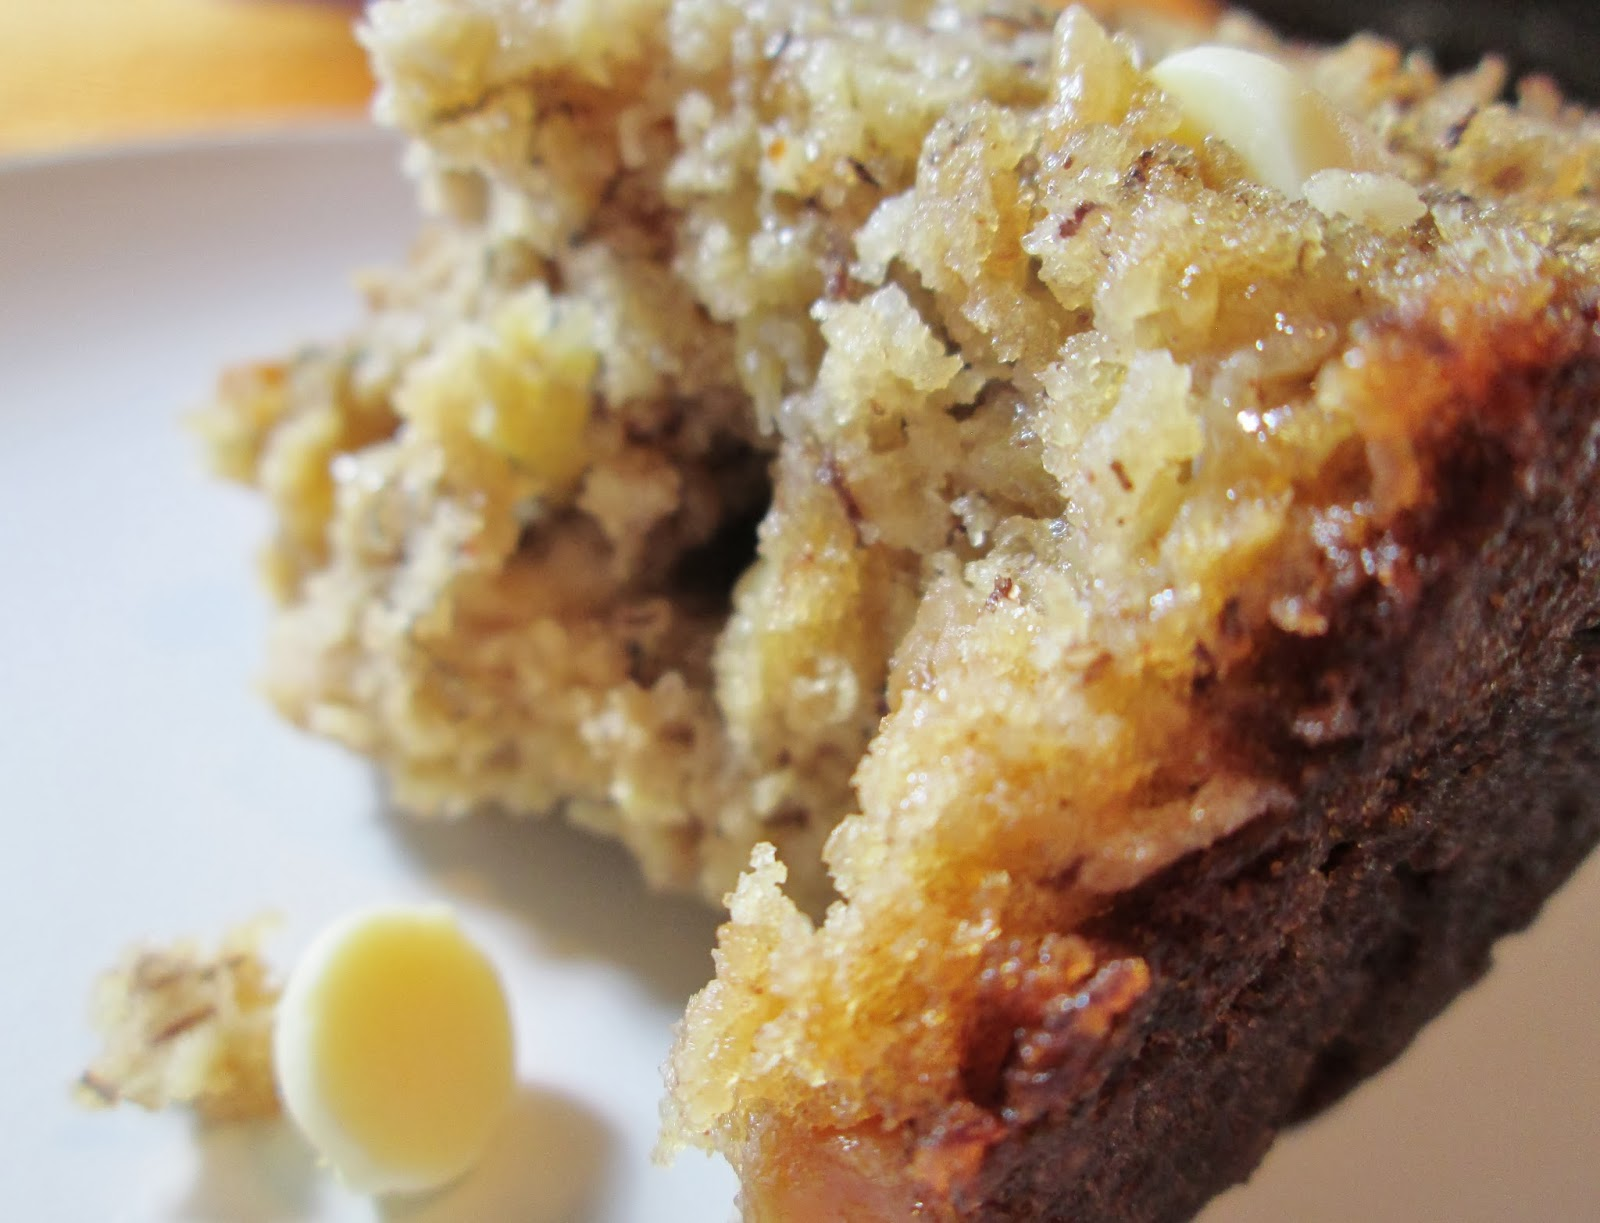 Best White Chocolate Macadamia Nut Banana Bread Recipe